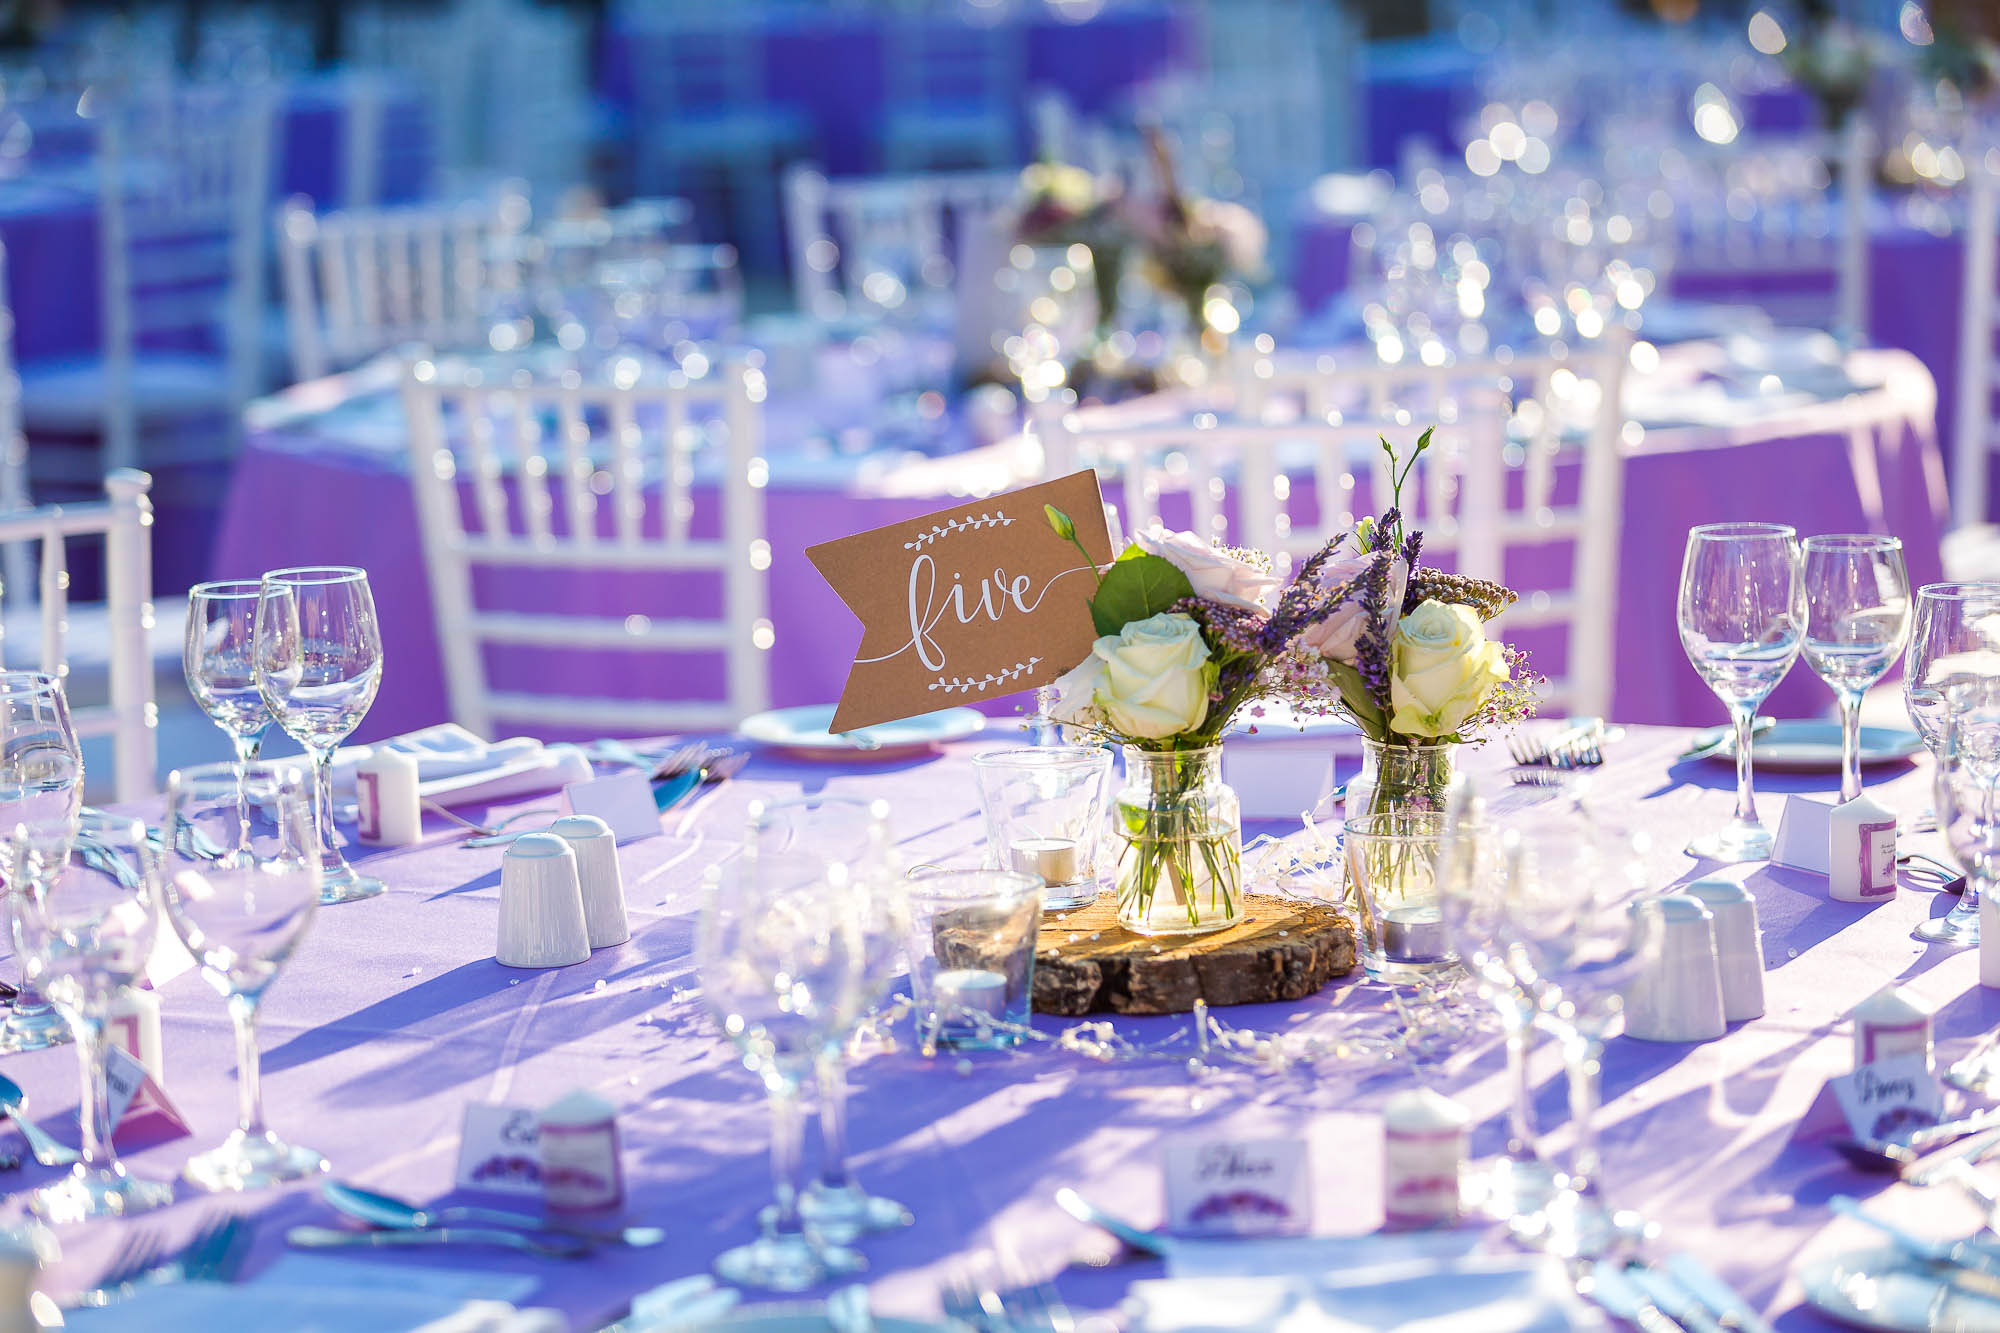 Wedding reception setup details. Photo by Elliot Nichol Photography.